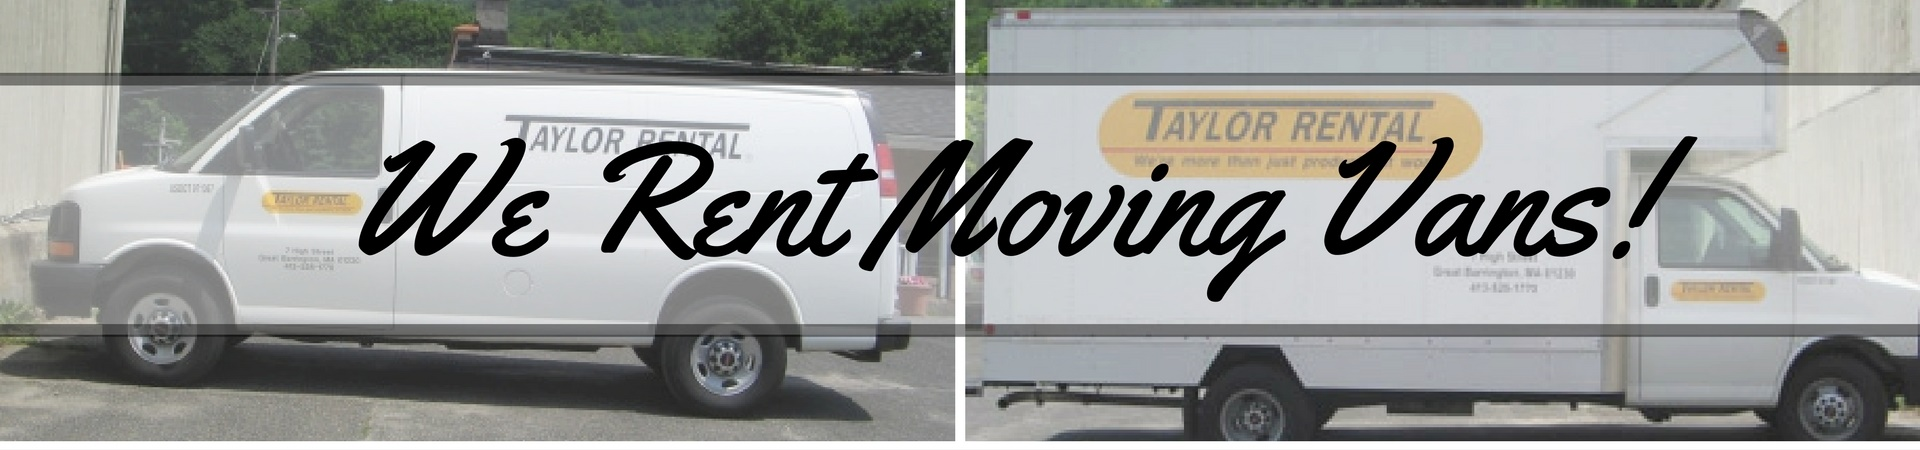 we rent moving vans